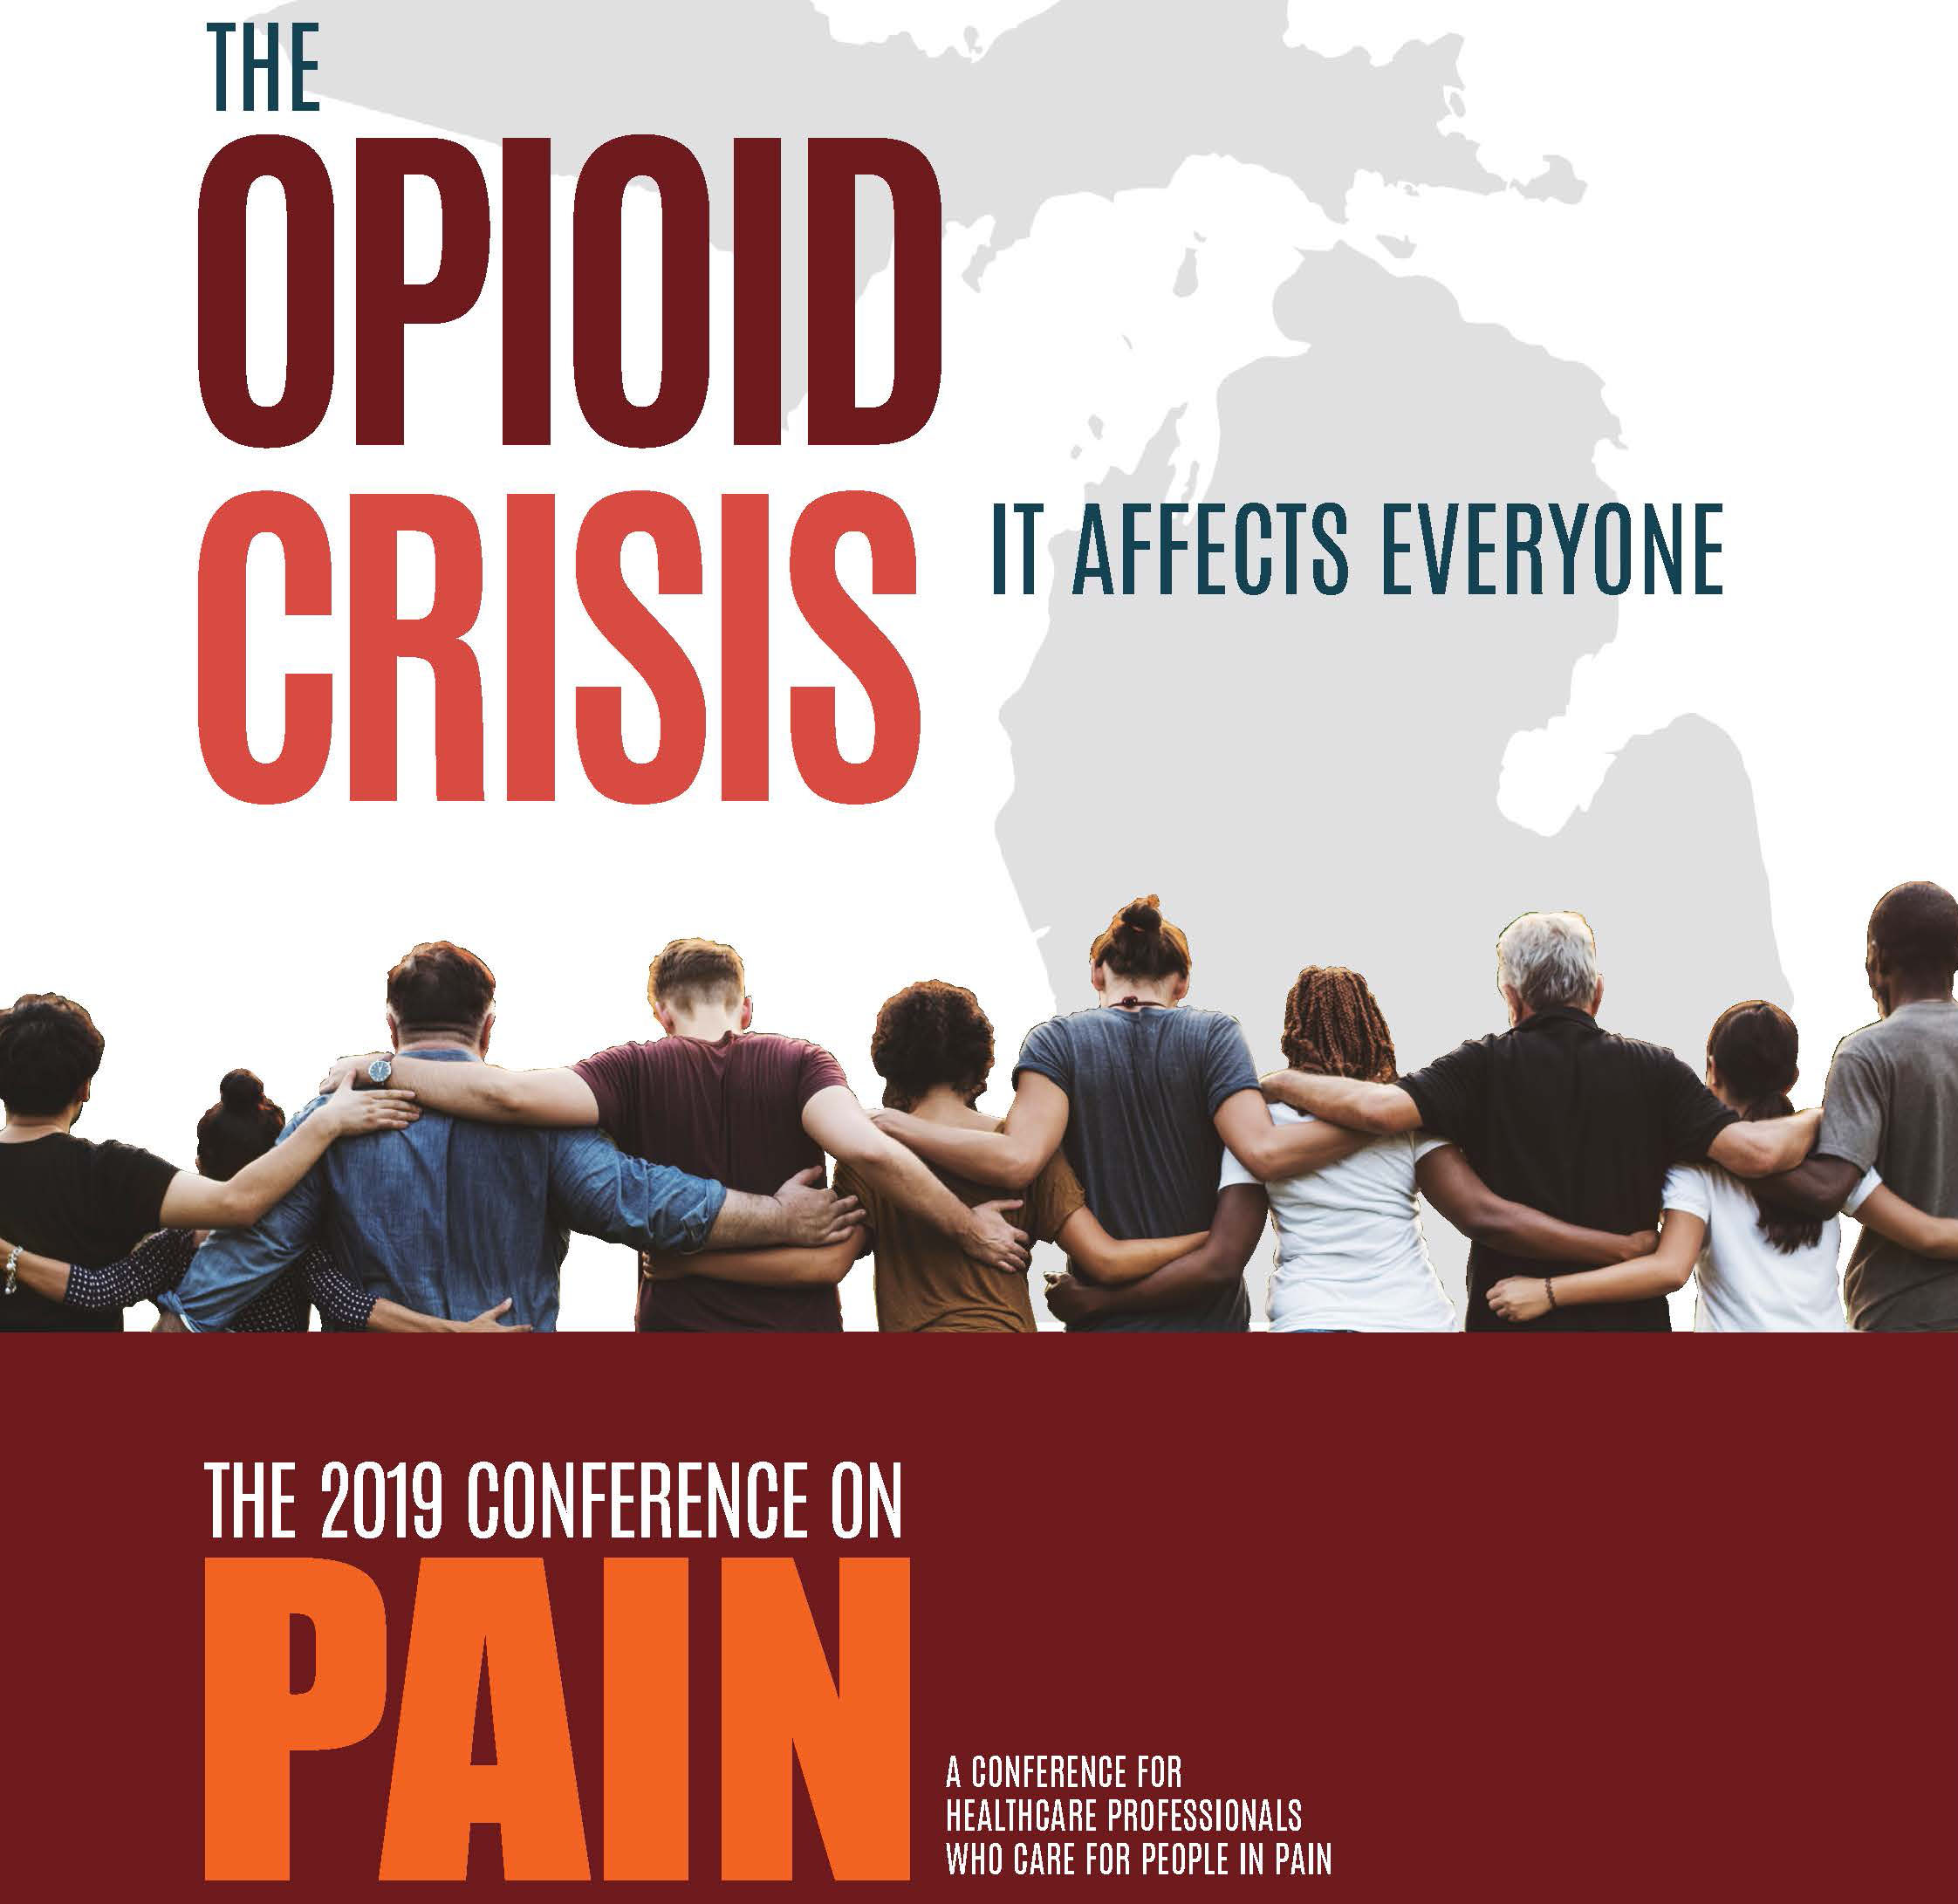 The 2019 Conference On Pain